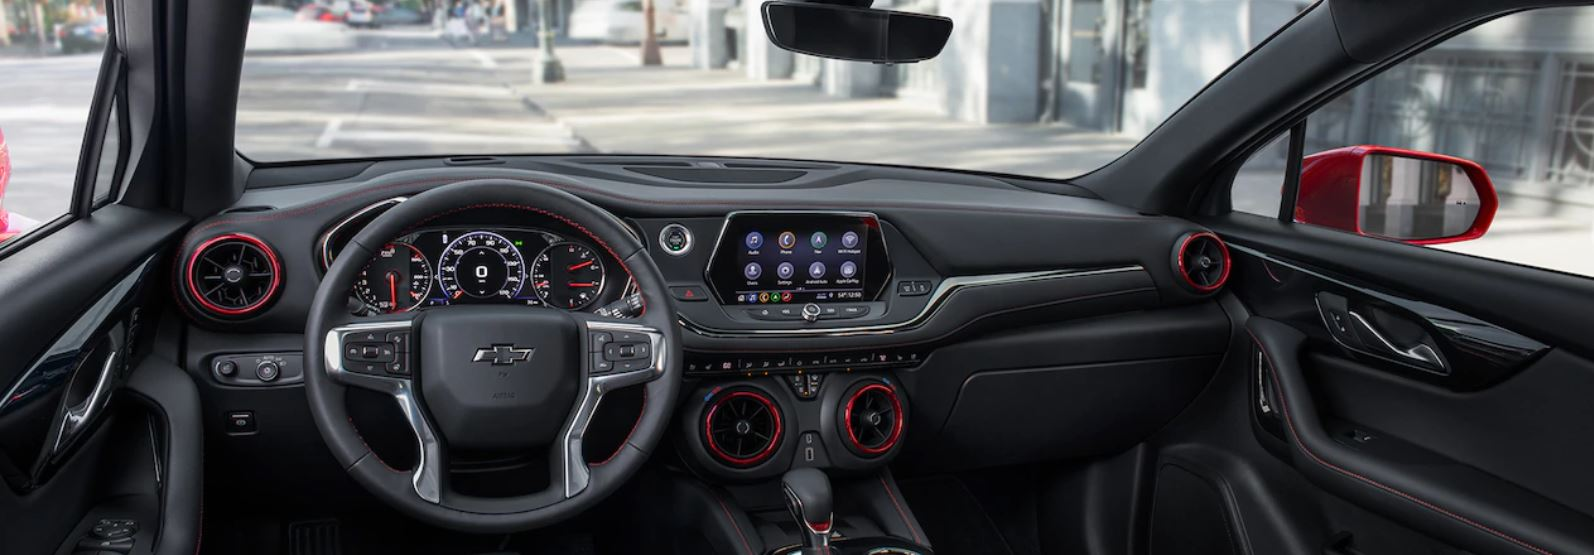 Interior of the 2019 Chevrolet Blazer